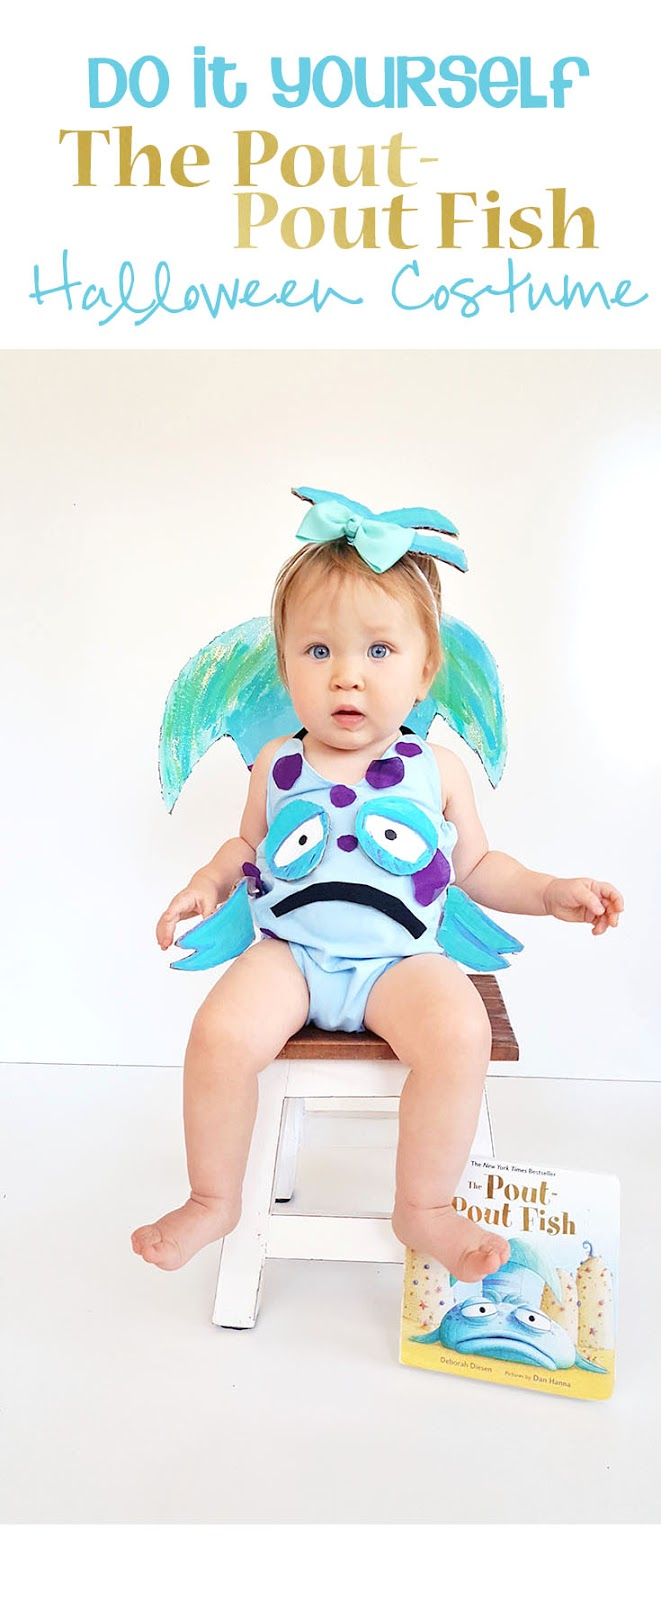 Diy the pout pout fish baby halloween costume inspired by the this little costume will leave your little pout pout fish feeling smooch worthy and solutioingenieria Choice Image